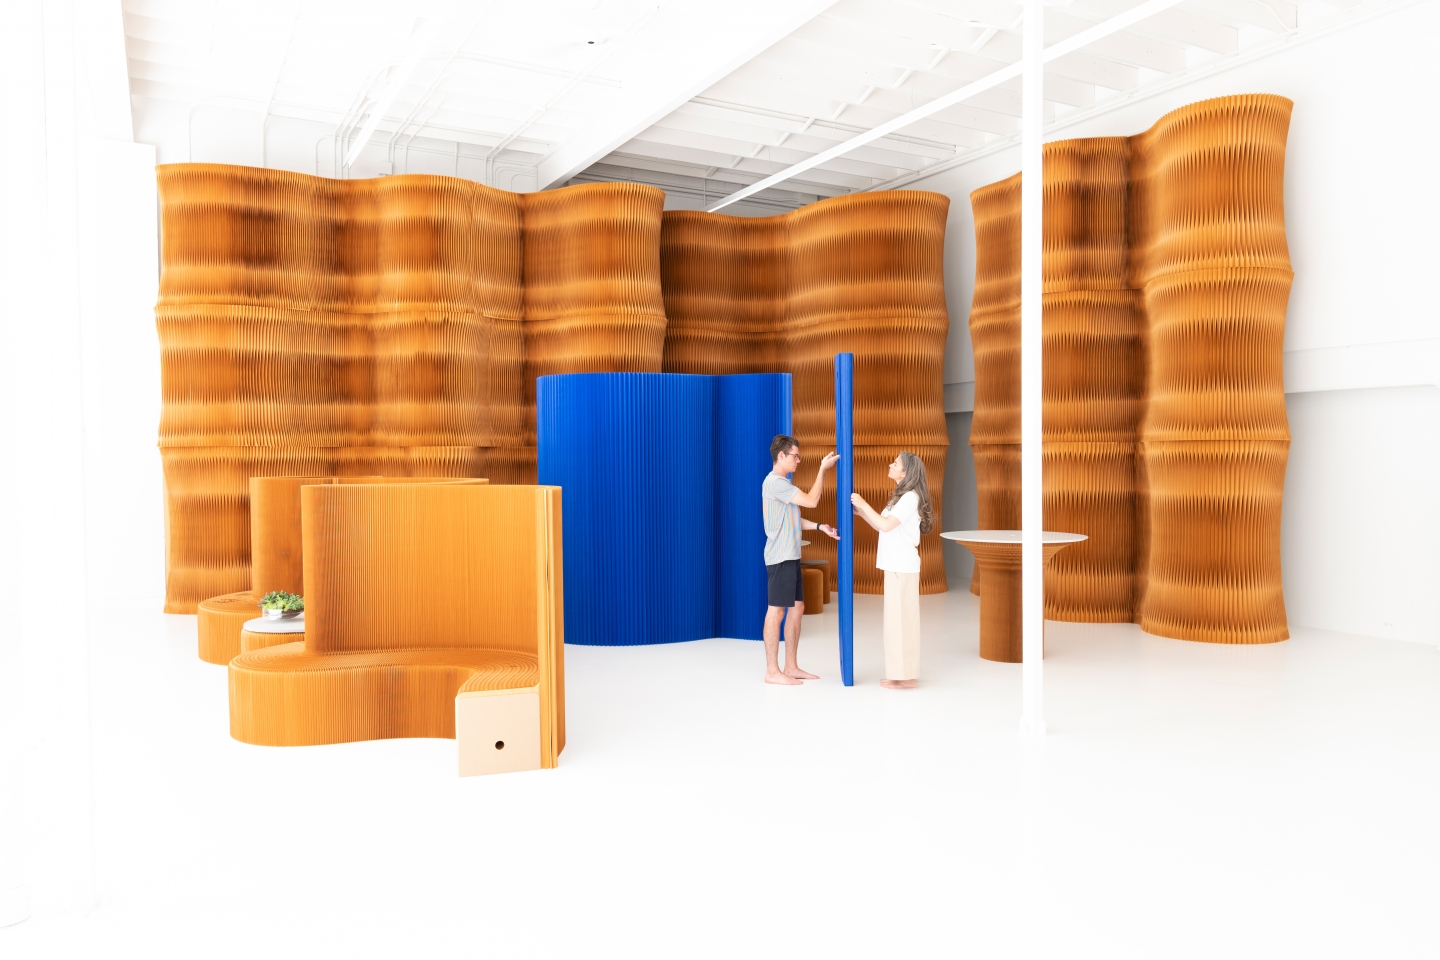 folding partitions - molo's soft collection at orgatec 2018